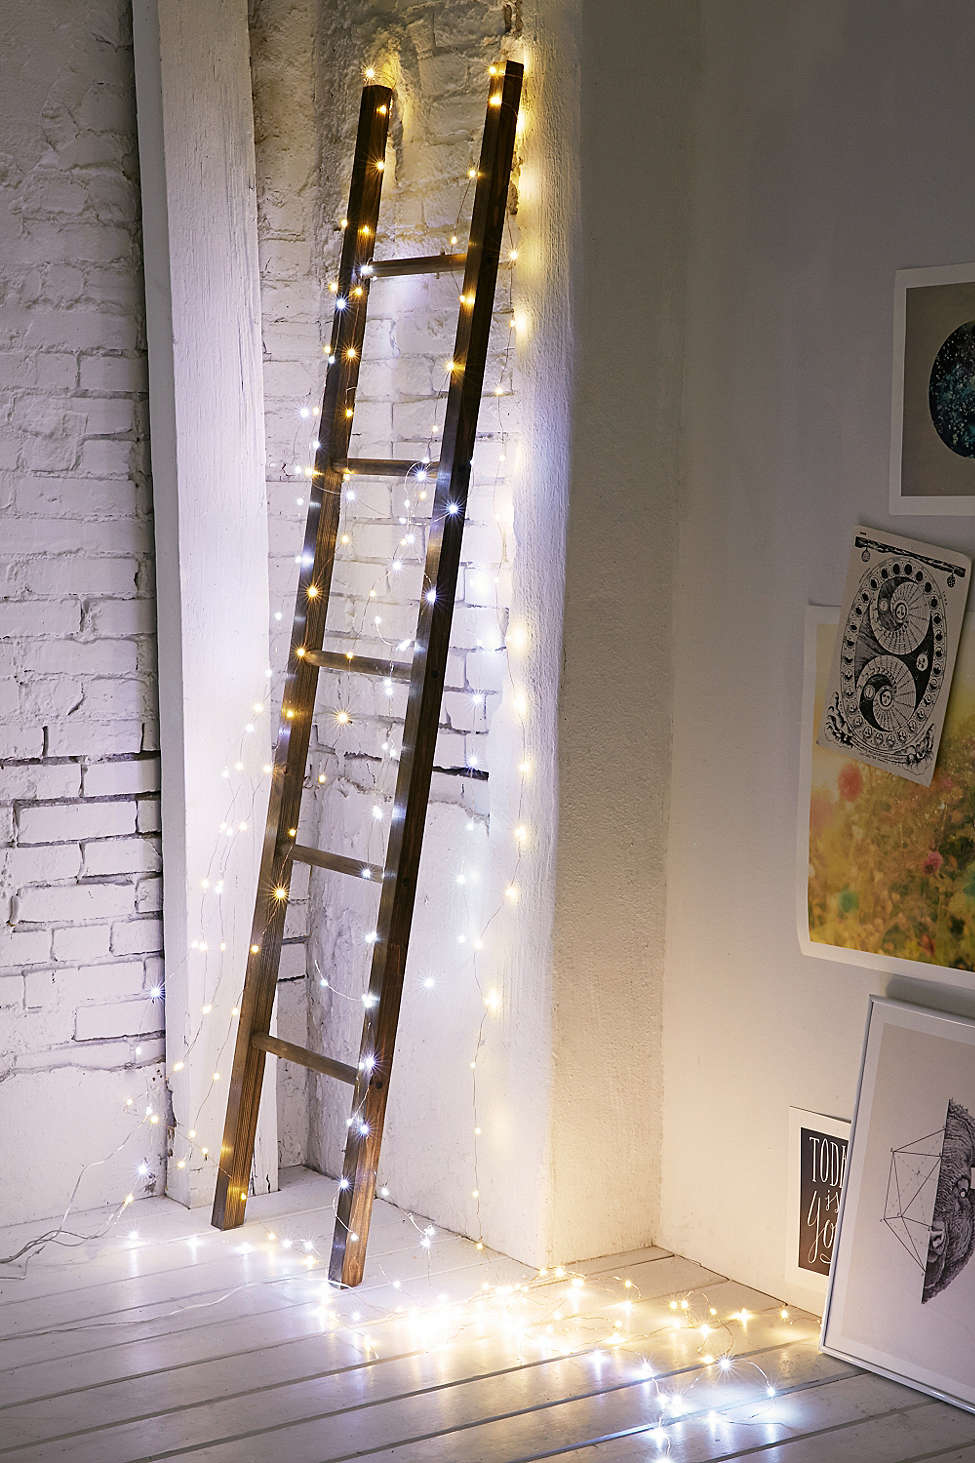 String lights illuminate a corner ladder